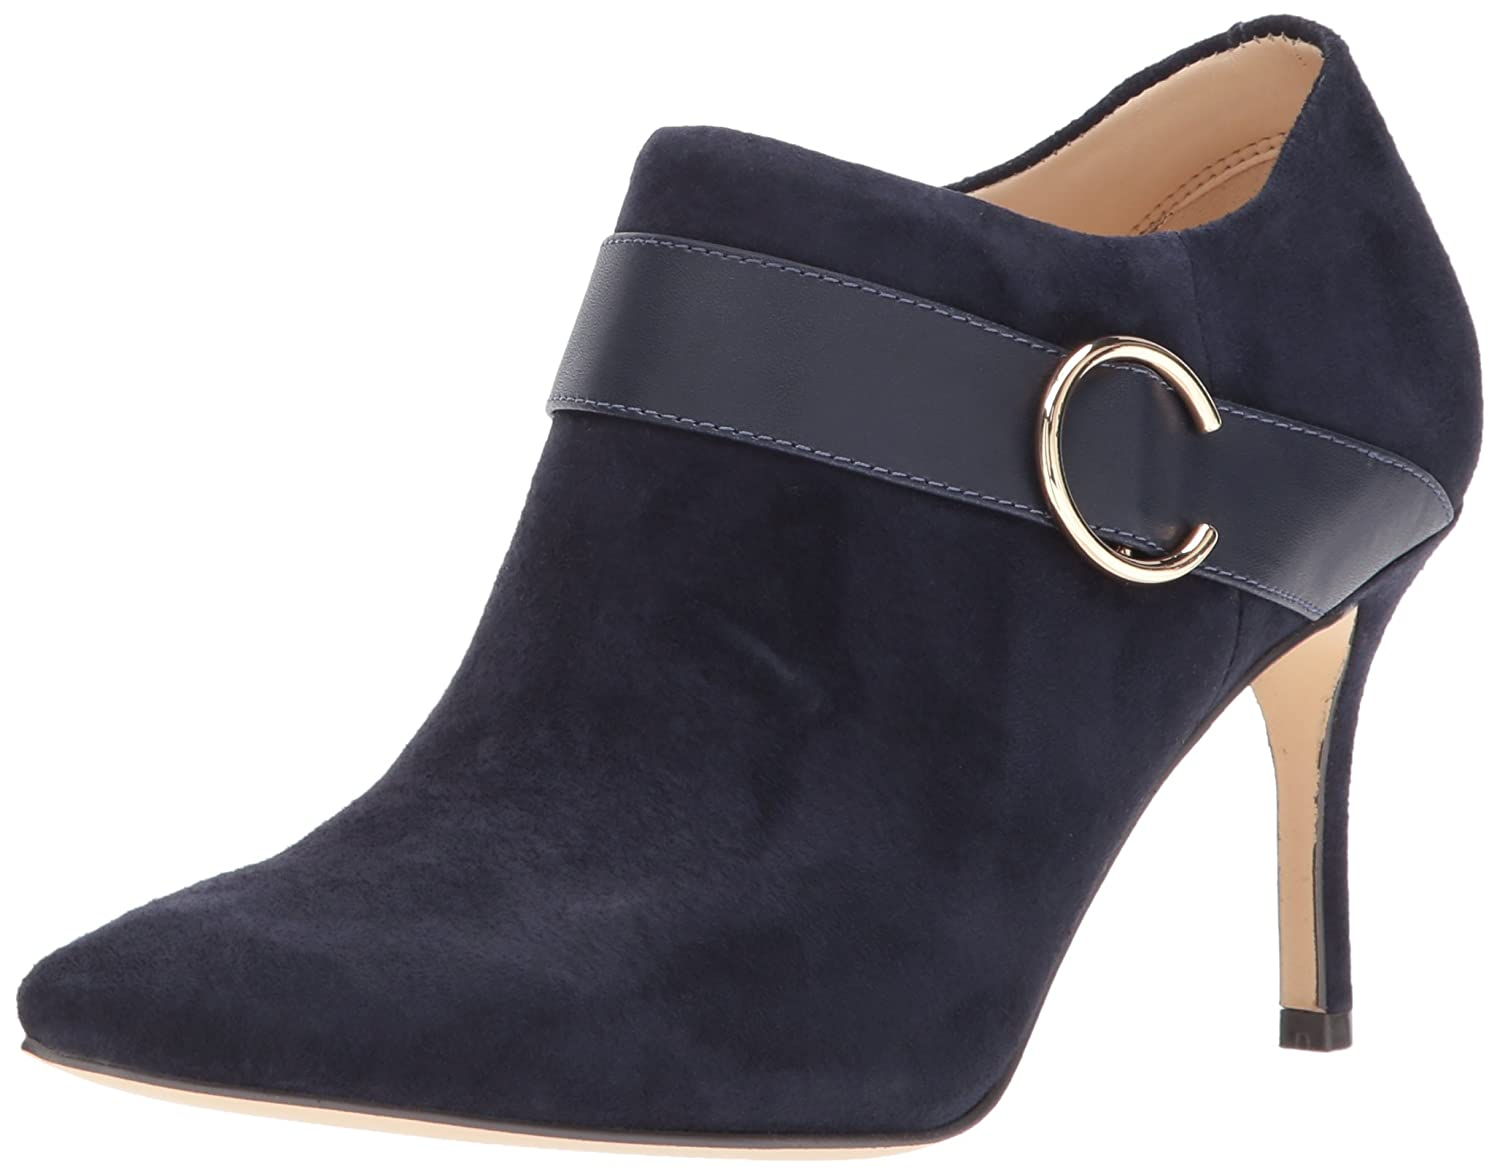 Nine West Women's Megaera Ankle Boot B01N5XUN8Q 9 B(M) US|Navy Suede